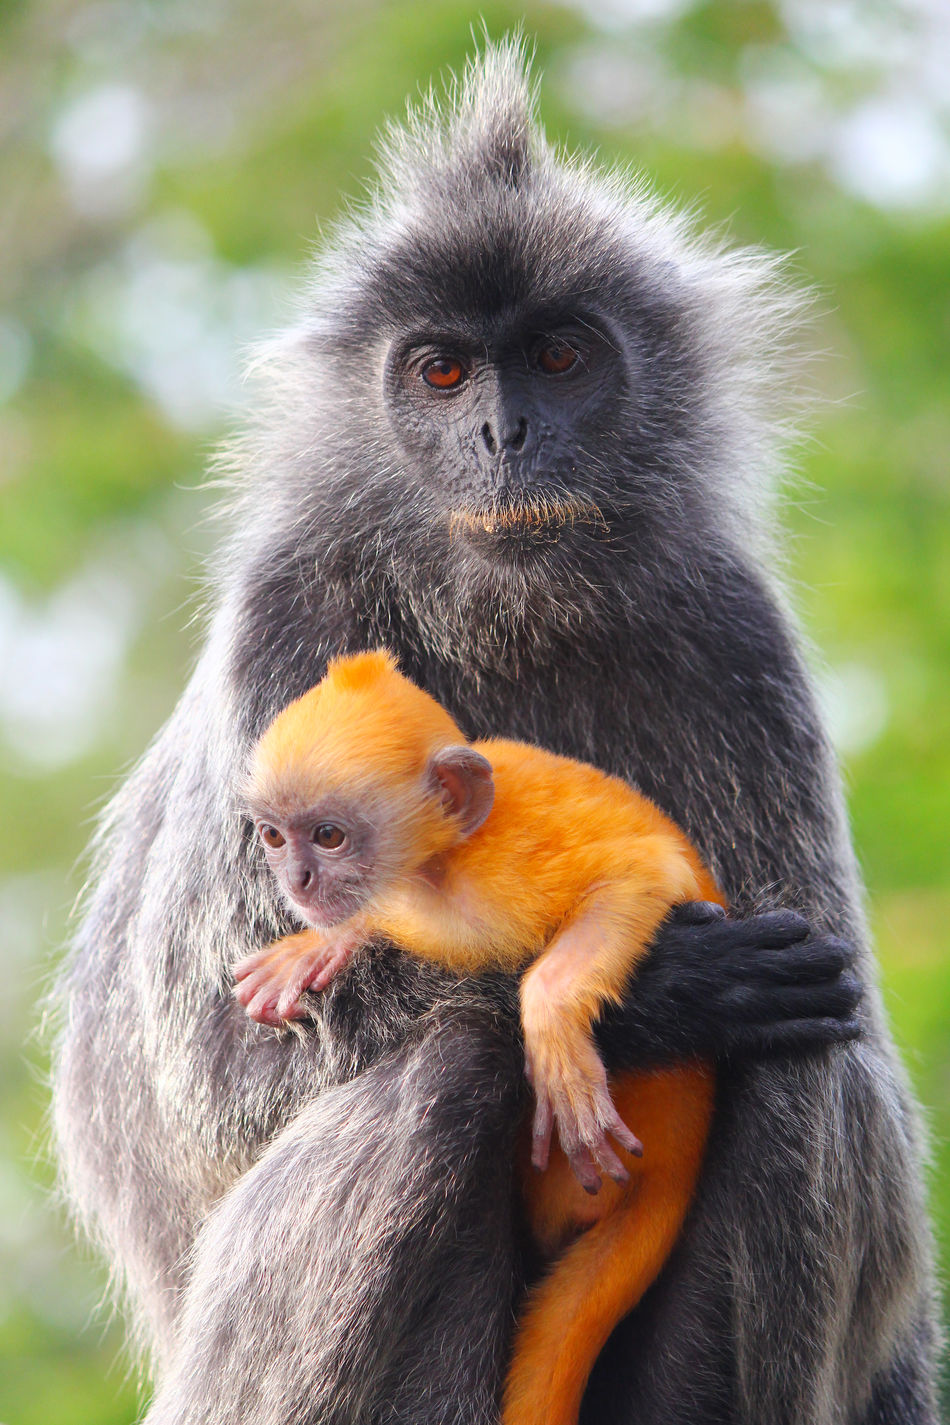 Adult silvered-leaf monkey holding orange coated young Adorable Animal Ape Baby Cute Langur Mammal Monkey Orange Primate Silvered-leaf Monkeys Wild Wildlife Young